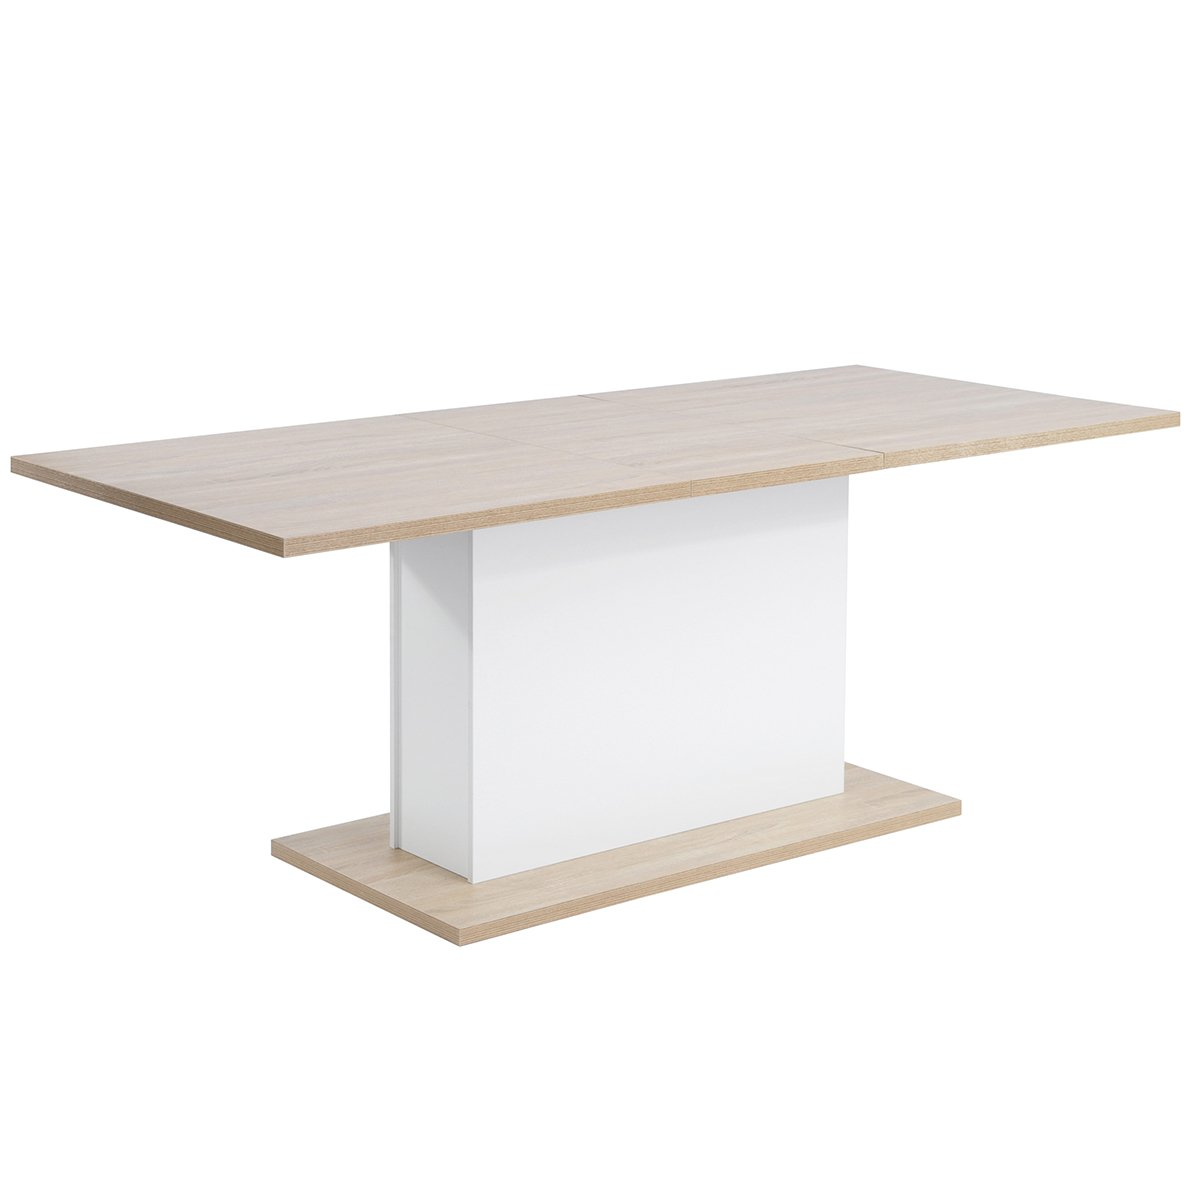 Extendable Rectangular Dining Table, Mltifunction Space Saving Wood Table (Extendable Beech Table) by HOMY CASA (Image #1)